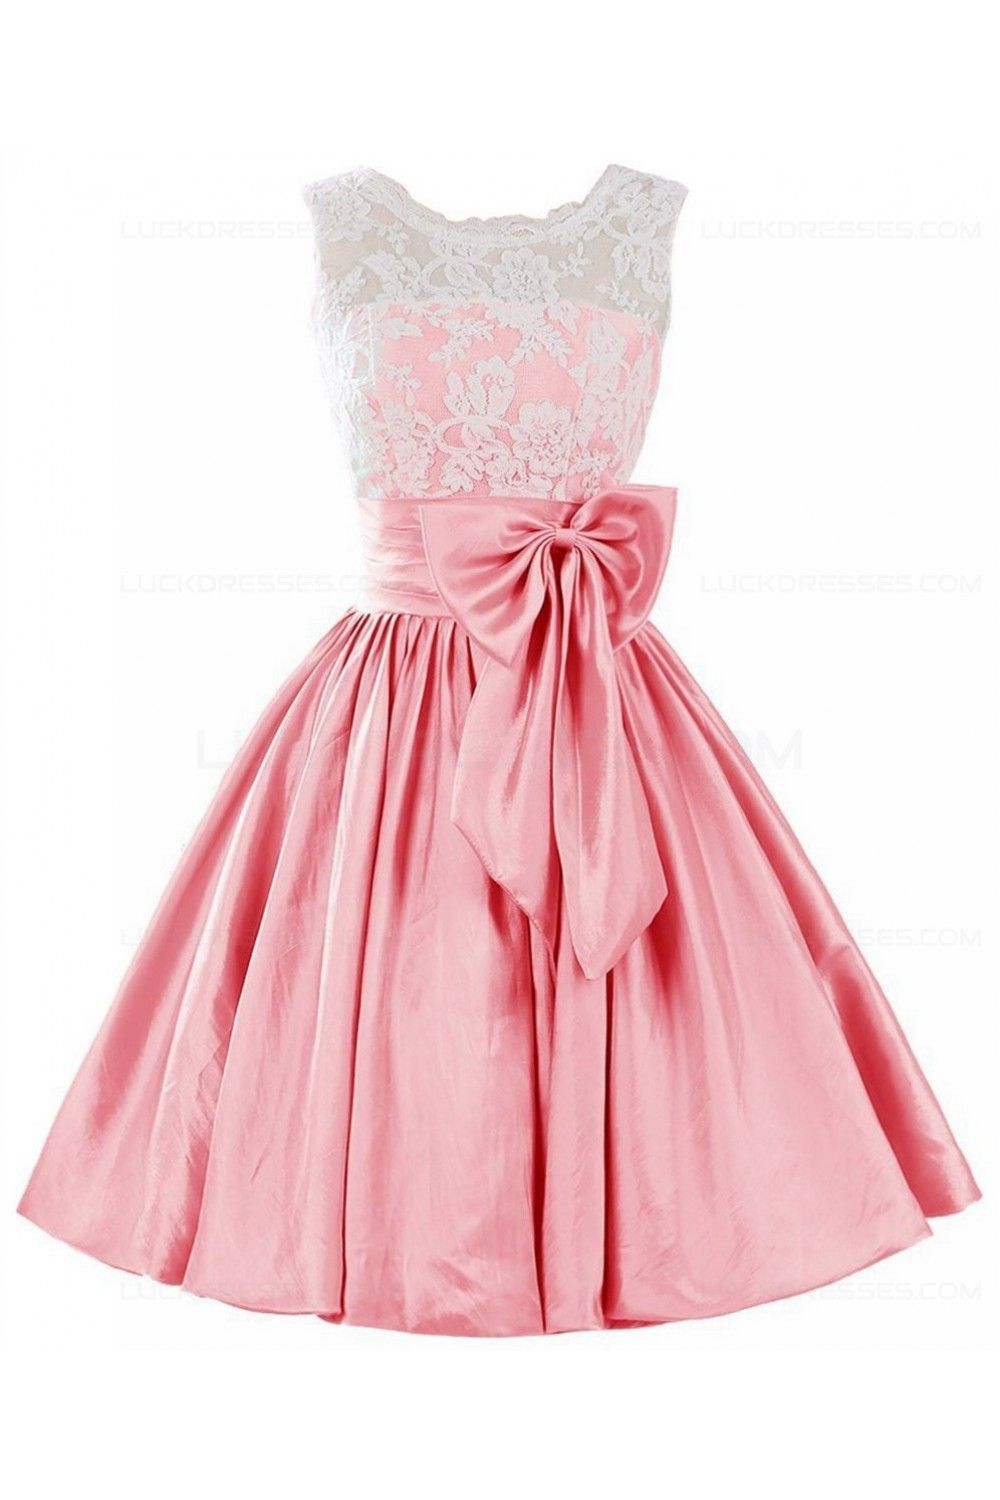 Aline lace short prom dresses party evening gowns